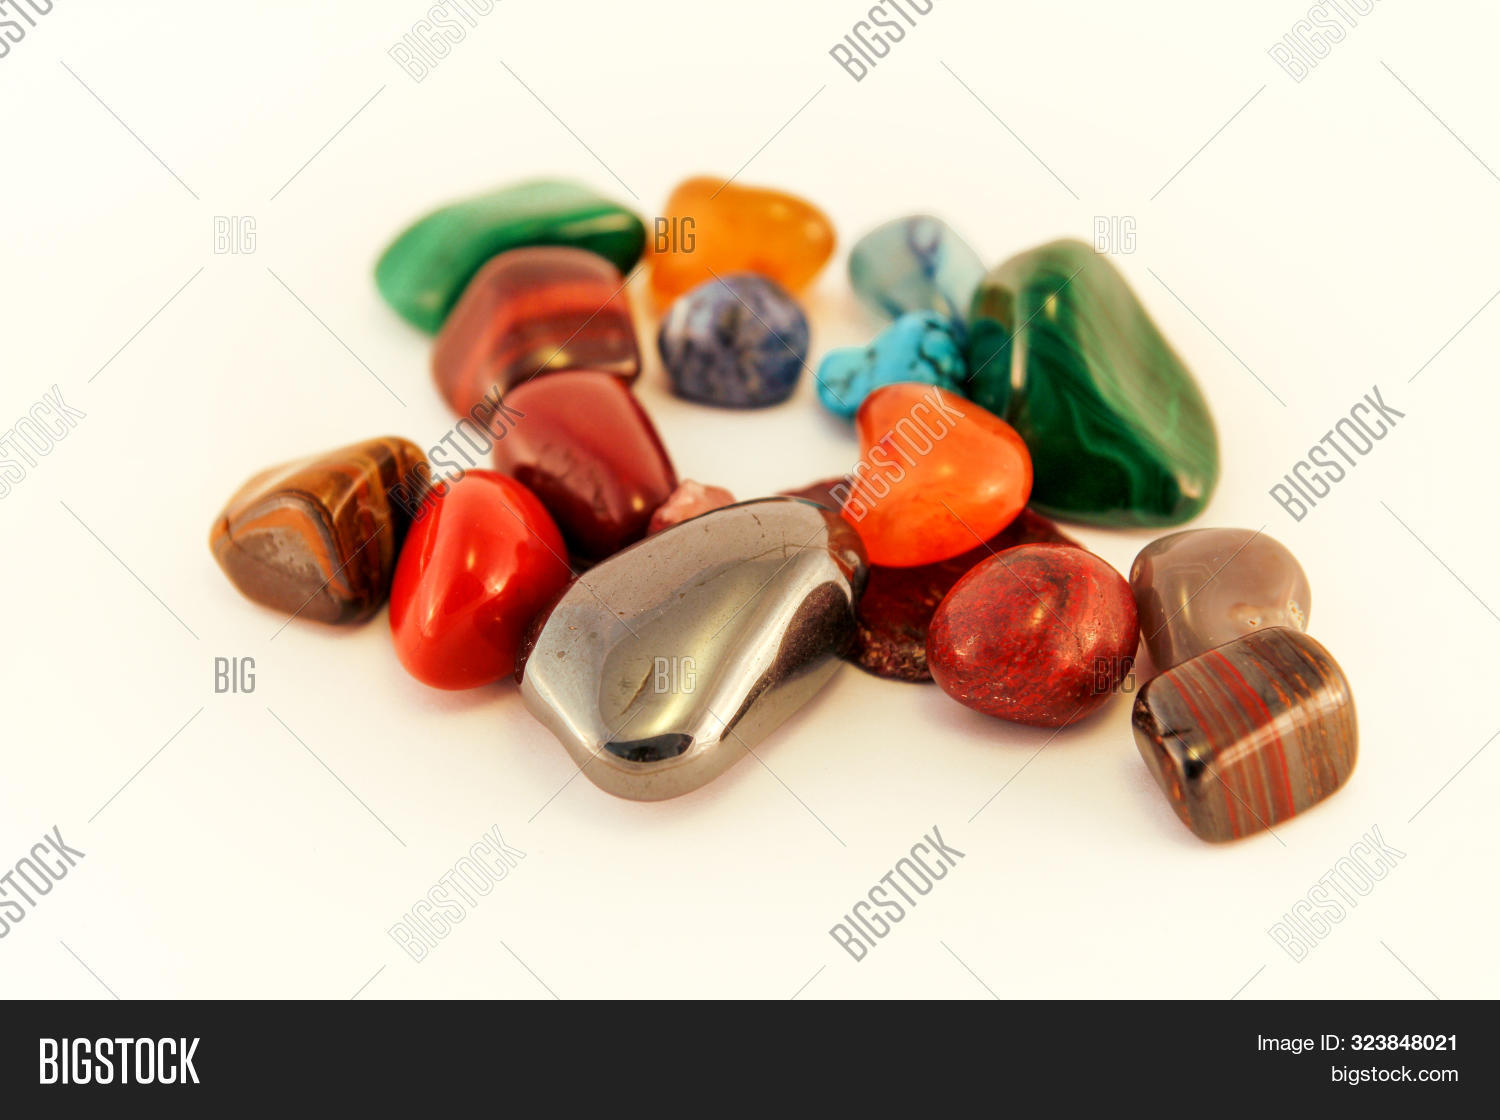 amber,amethyst,background,beautiful,beauty,bright,carnelian,cats,charmers,collection,color,colorful,crystal,decoration,desert,energy,eye,gem,gemstone,geology,gift,healing,jade,jasper,jewelery,mineral,mineralogy,nature,onyx,palm,pebble,ponder,precious,quartz,rock,rose,semi,semi-precious,semiprecious,shiny,stone,texture,translucent,treasure,turquoise,types,variation,white,worry